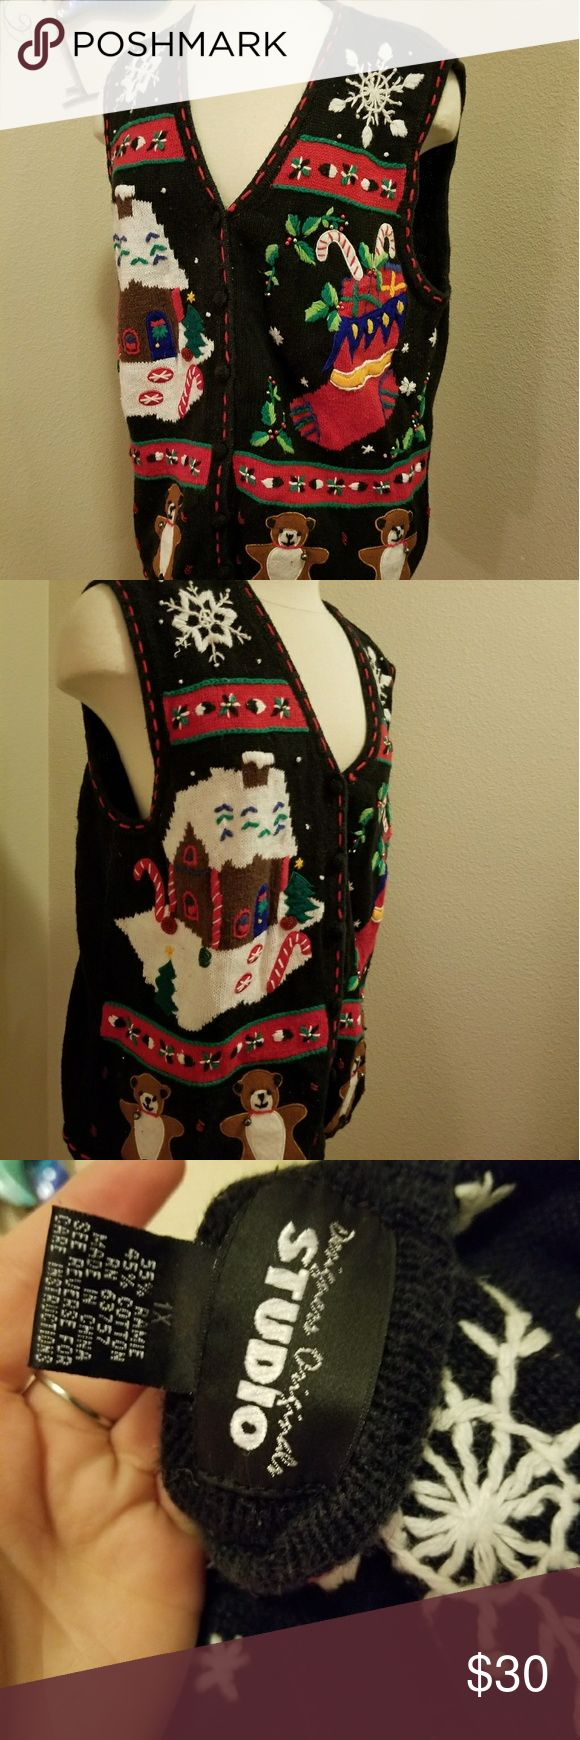 Ugly Christmas sweater vest embroidered size 1x Awesome ugly Christmas sweater vest, cardigan. Ginger bread house, bears and stockings adorn this awesome sweater. Sized 1x. And is stretchy could be worn as size large baggy or used for 1x. Sweater is used Nd has some minor pulling. Could be removed with sweater shaver. Studio Sweaters Cardigans